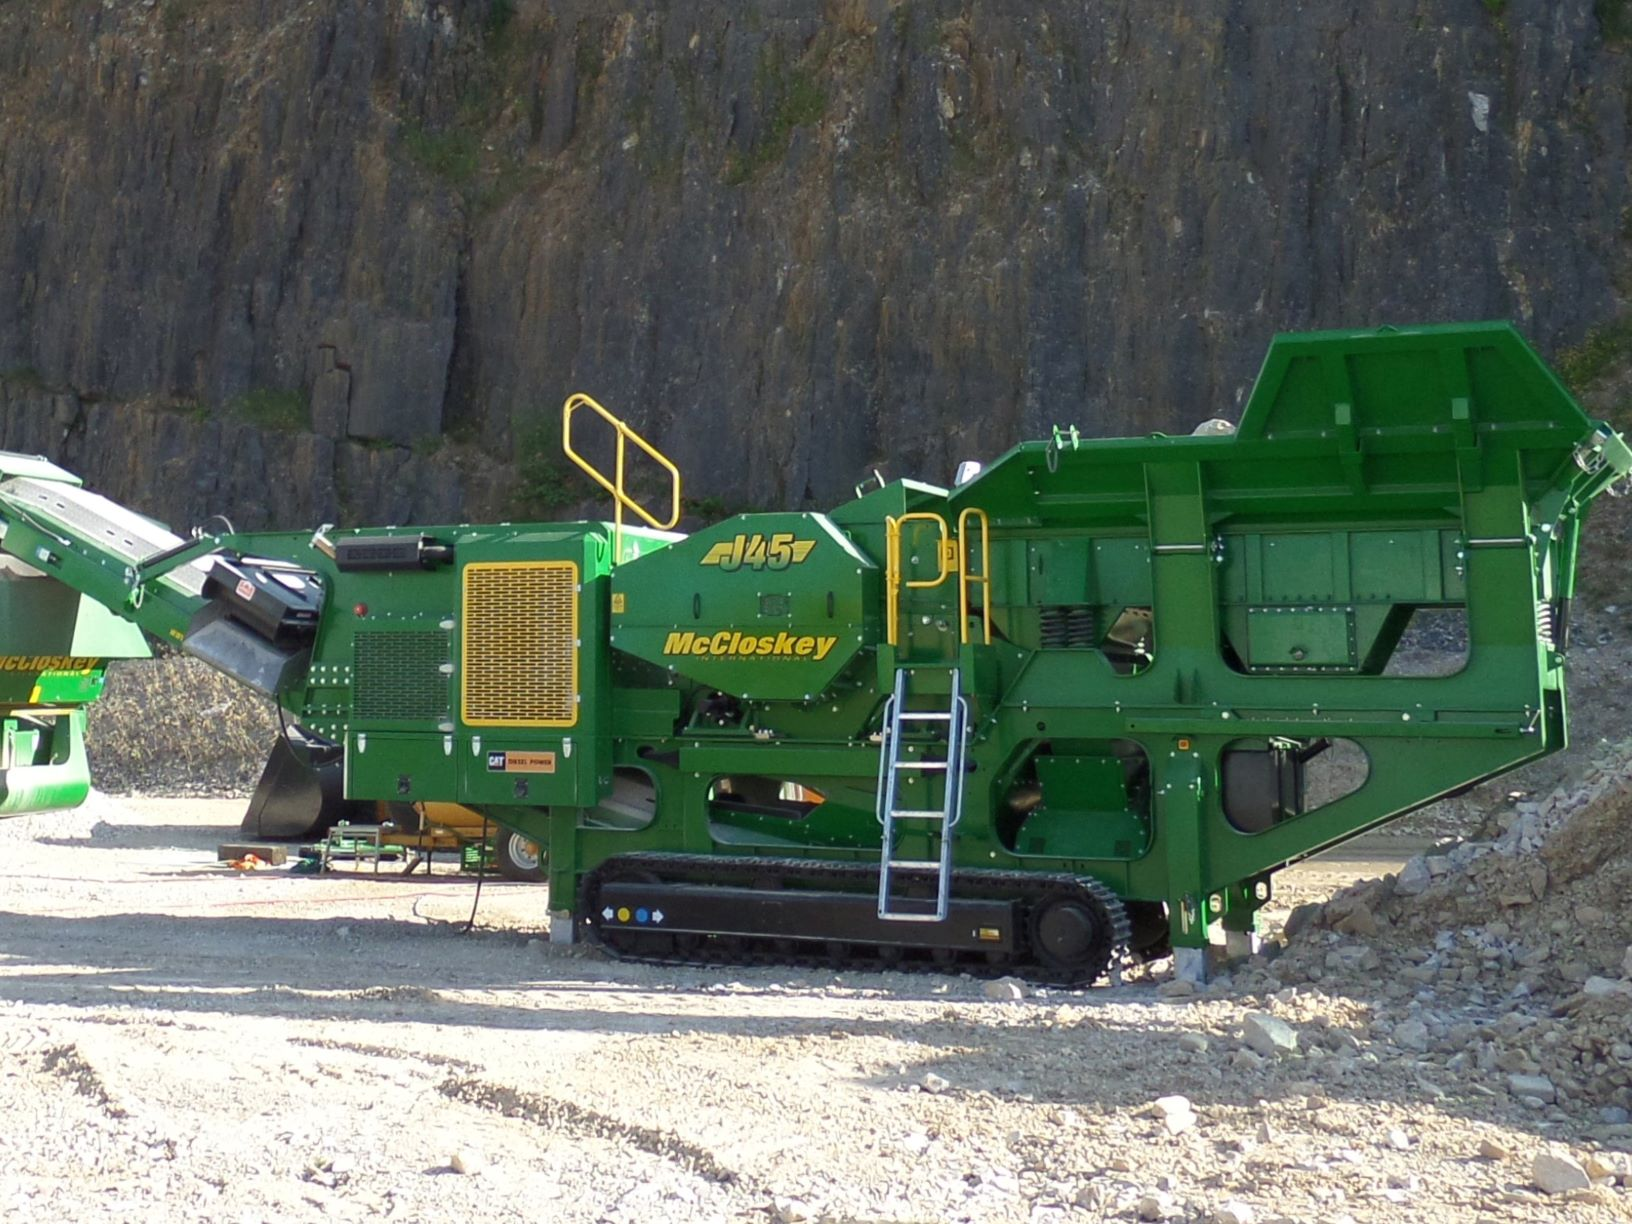 HPE Africa's McCloskey J45 high capacity mobile jaw crushers